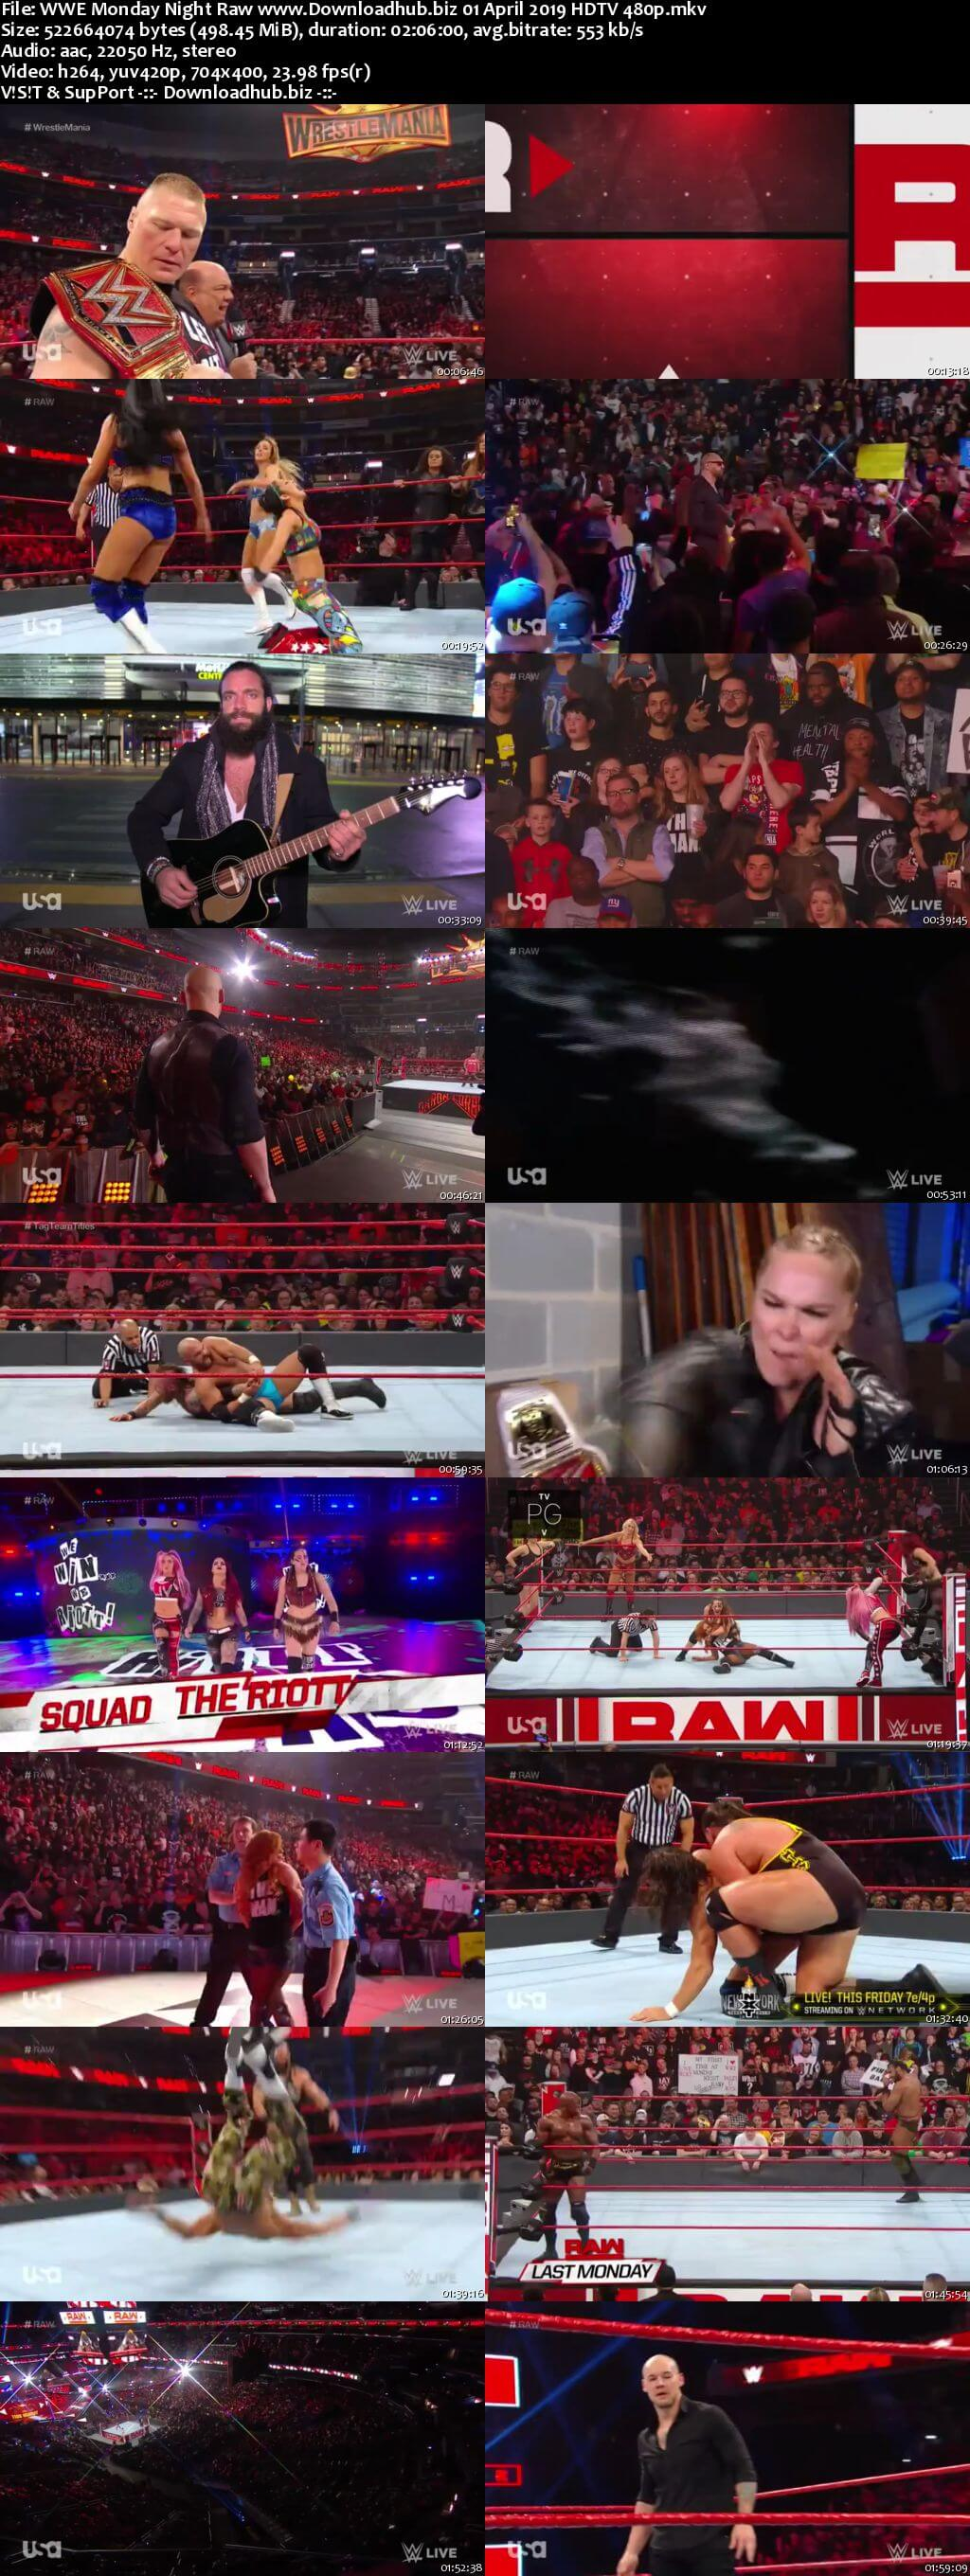 WWE Monday Night Raw 1st April 2019 500MB HDTVRip 480p